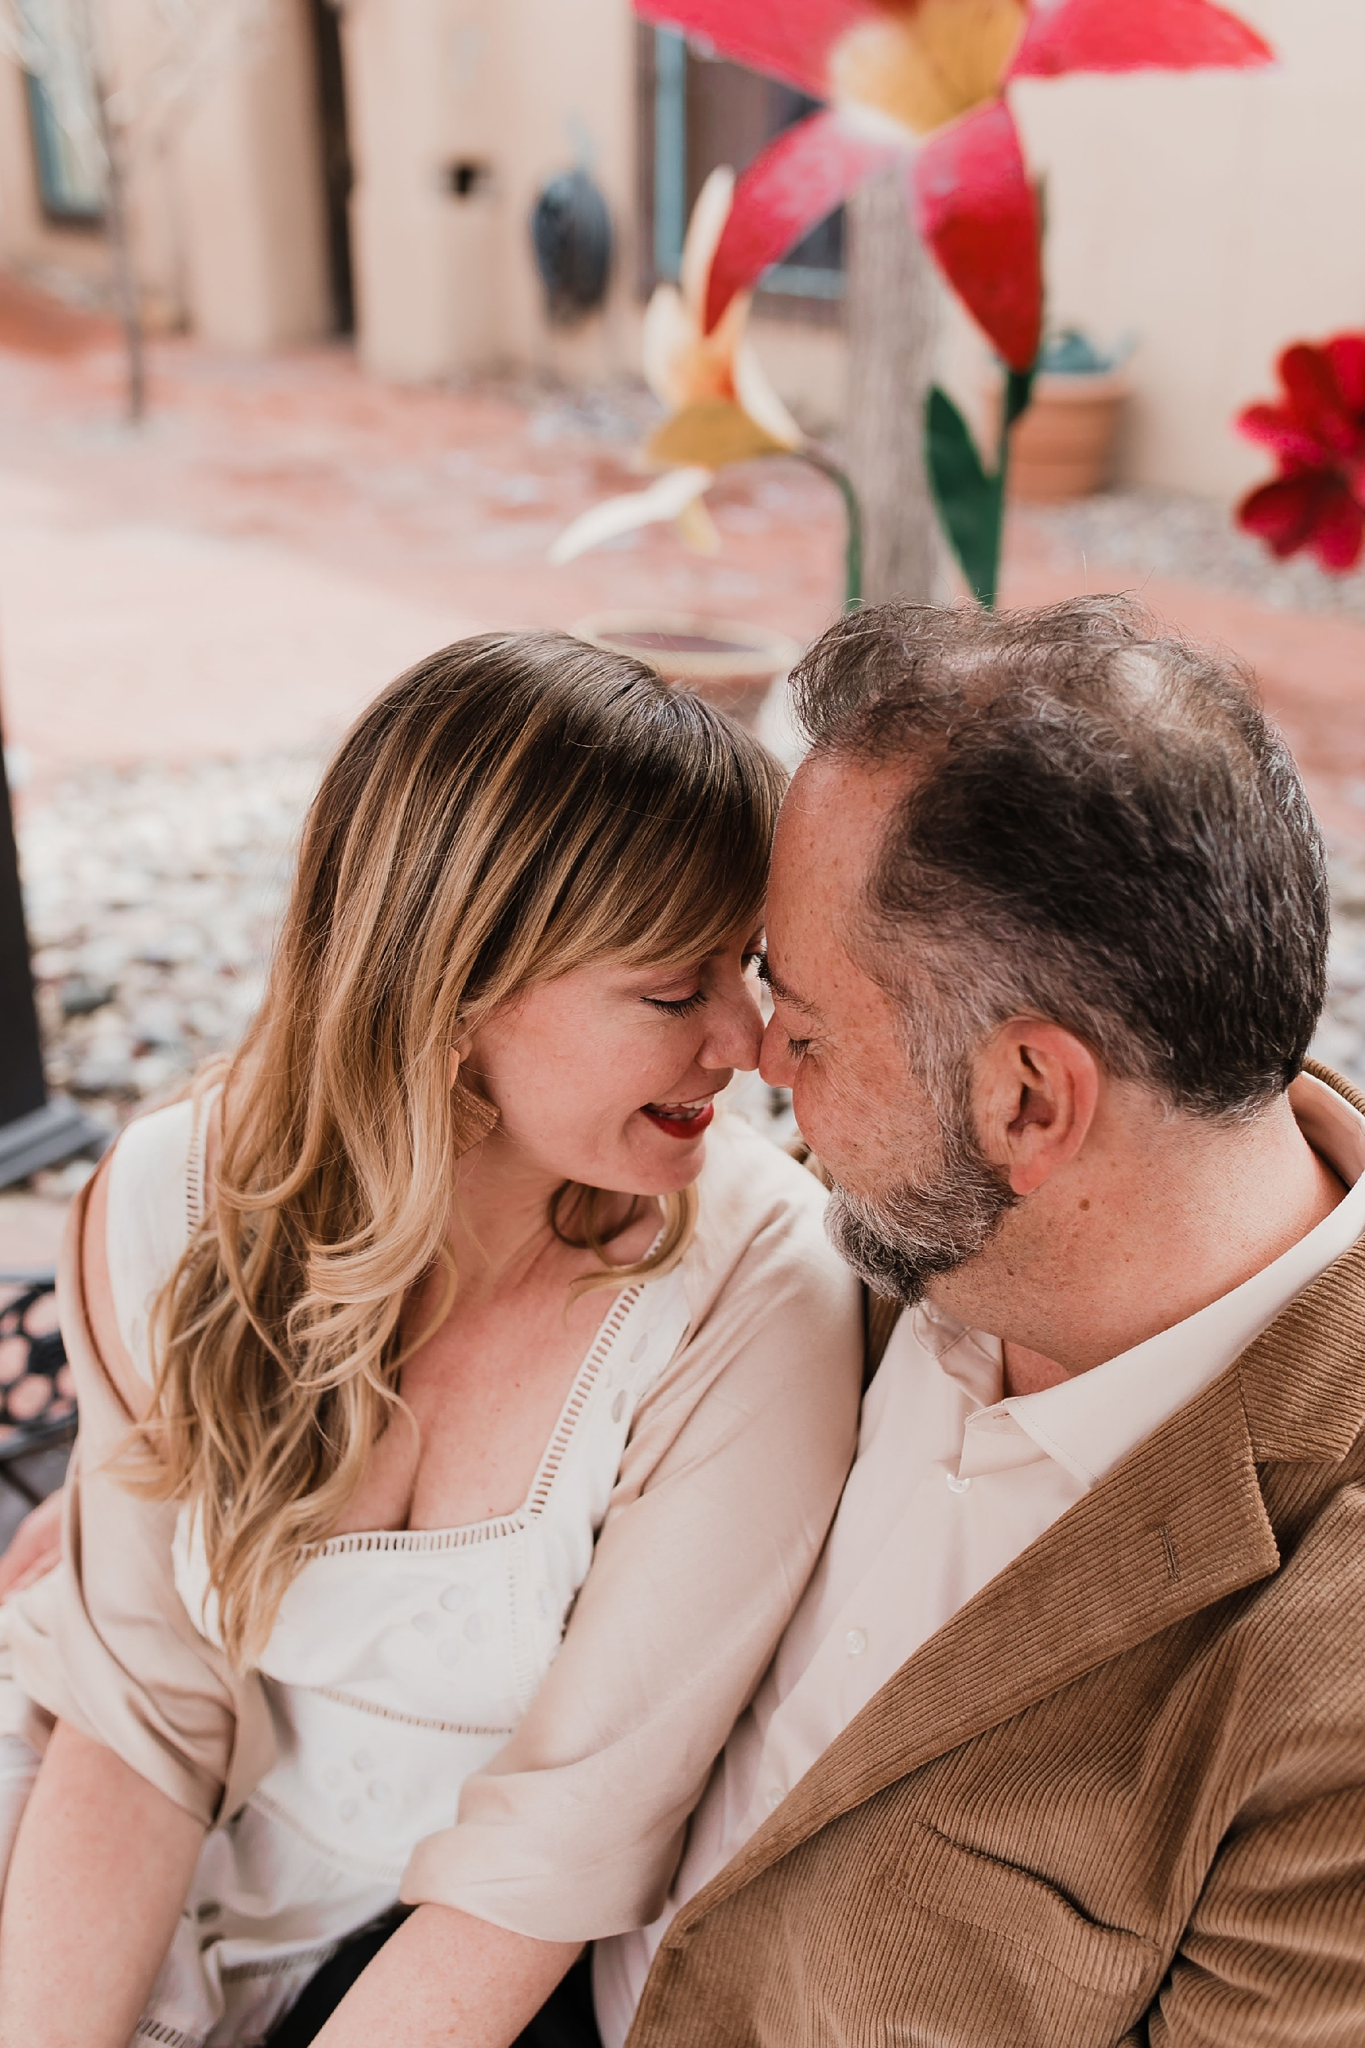 Alicia+lucia+photography+-+albuquerque+wedding+photographer+-+santa+fe+wedding+photography+-+new+mexico+wedding+photographer+-+new+mexico+engagement+-+albuquerque+engagement+-+old+town+engagement_0013.jpg